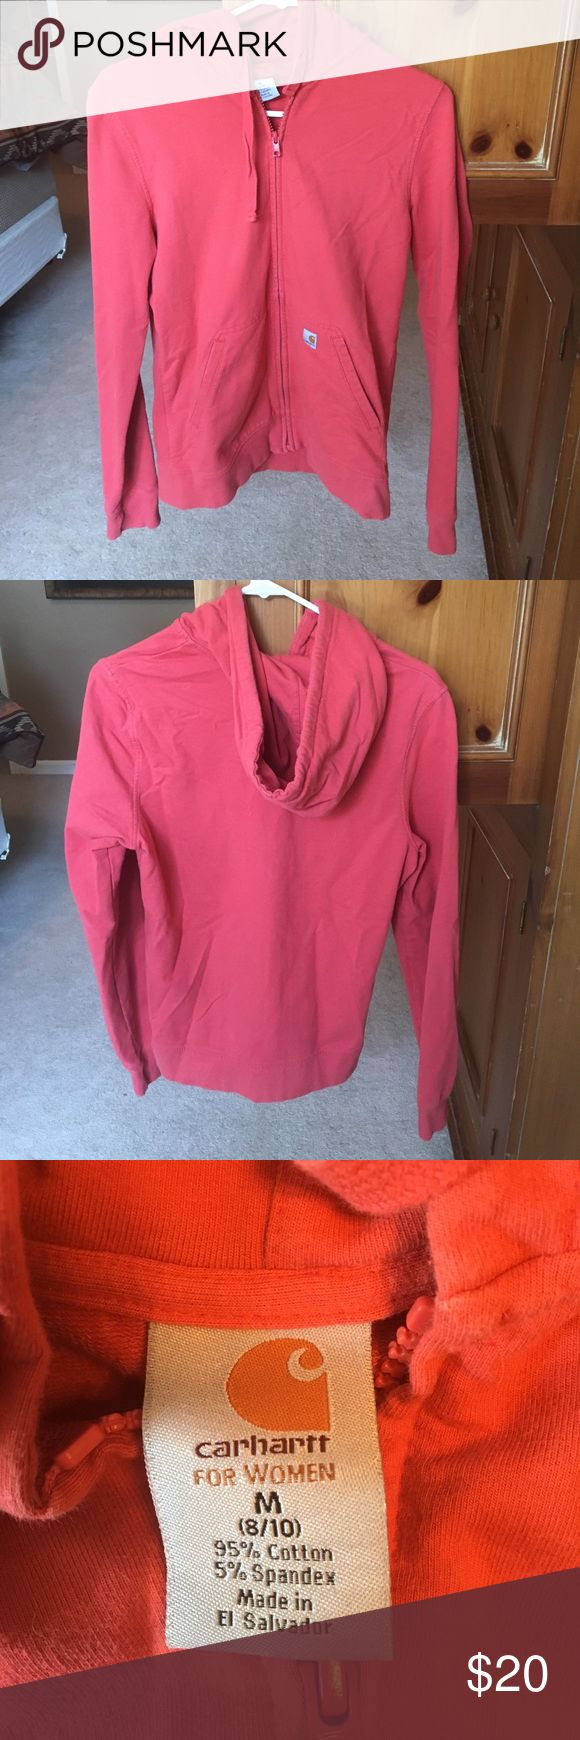 Carhartt jacket Carhartt lighter weight jacket. Great for fall. Pink/coral color. Super comfy. Only worn a few times. No stains. Smoke free home. Carhartt Jackets & Coats